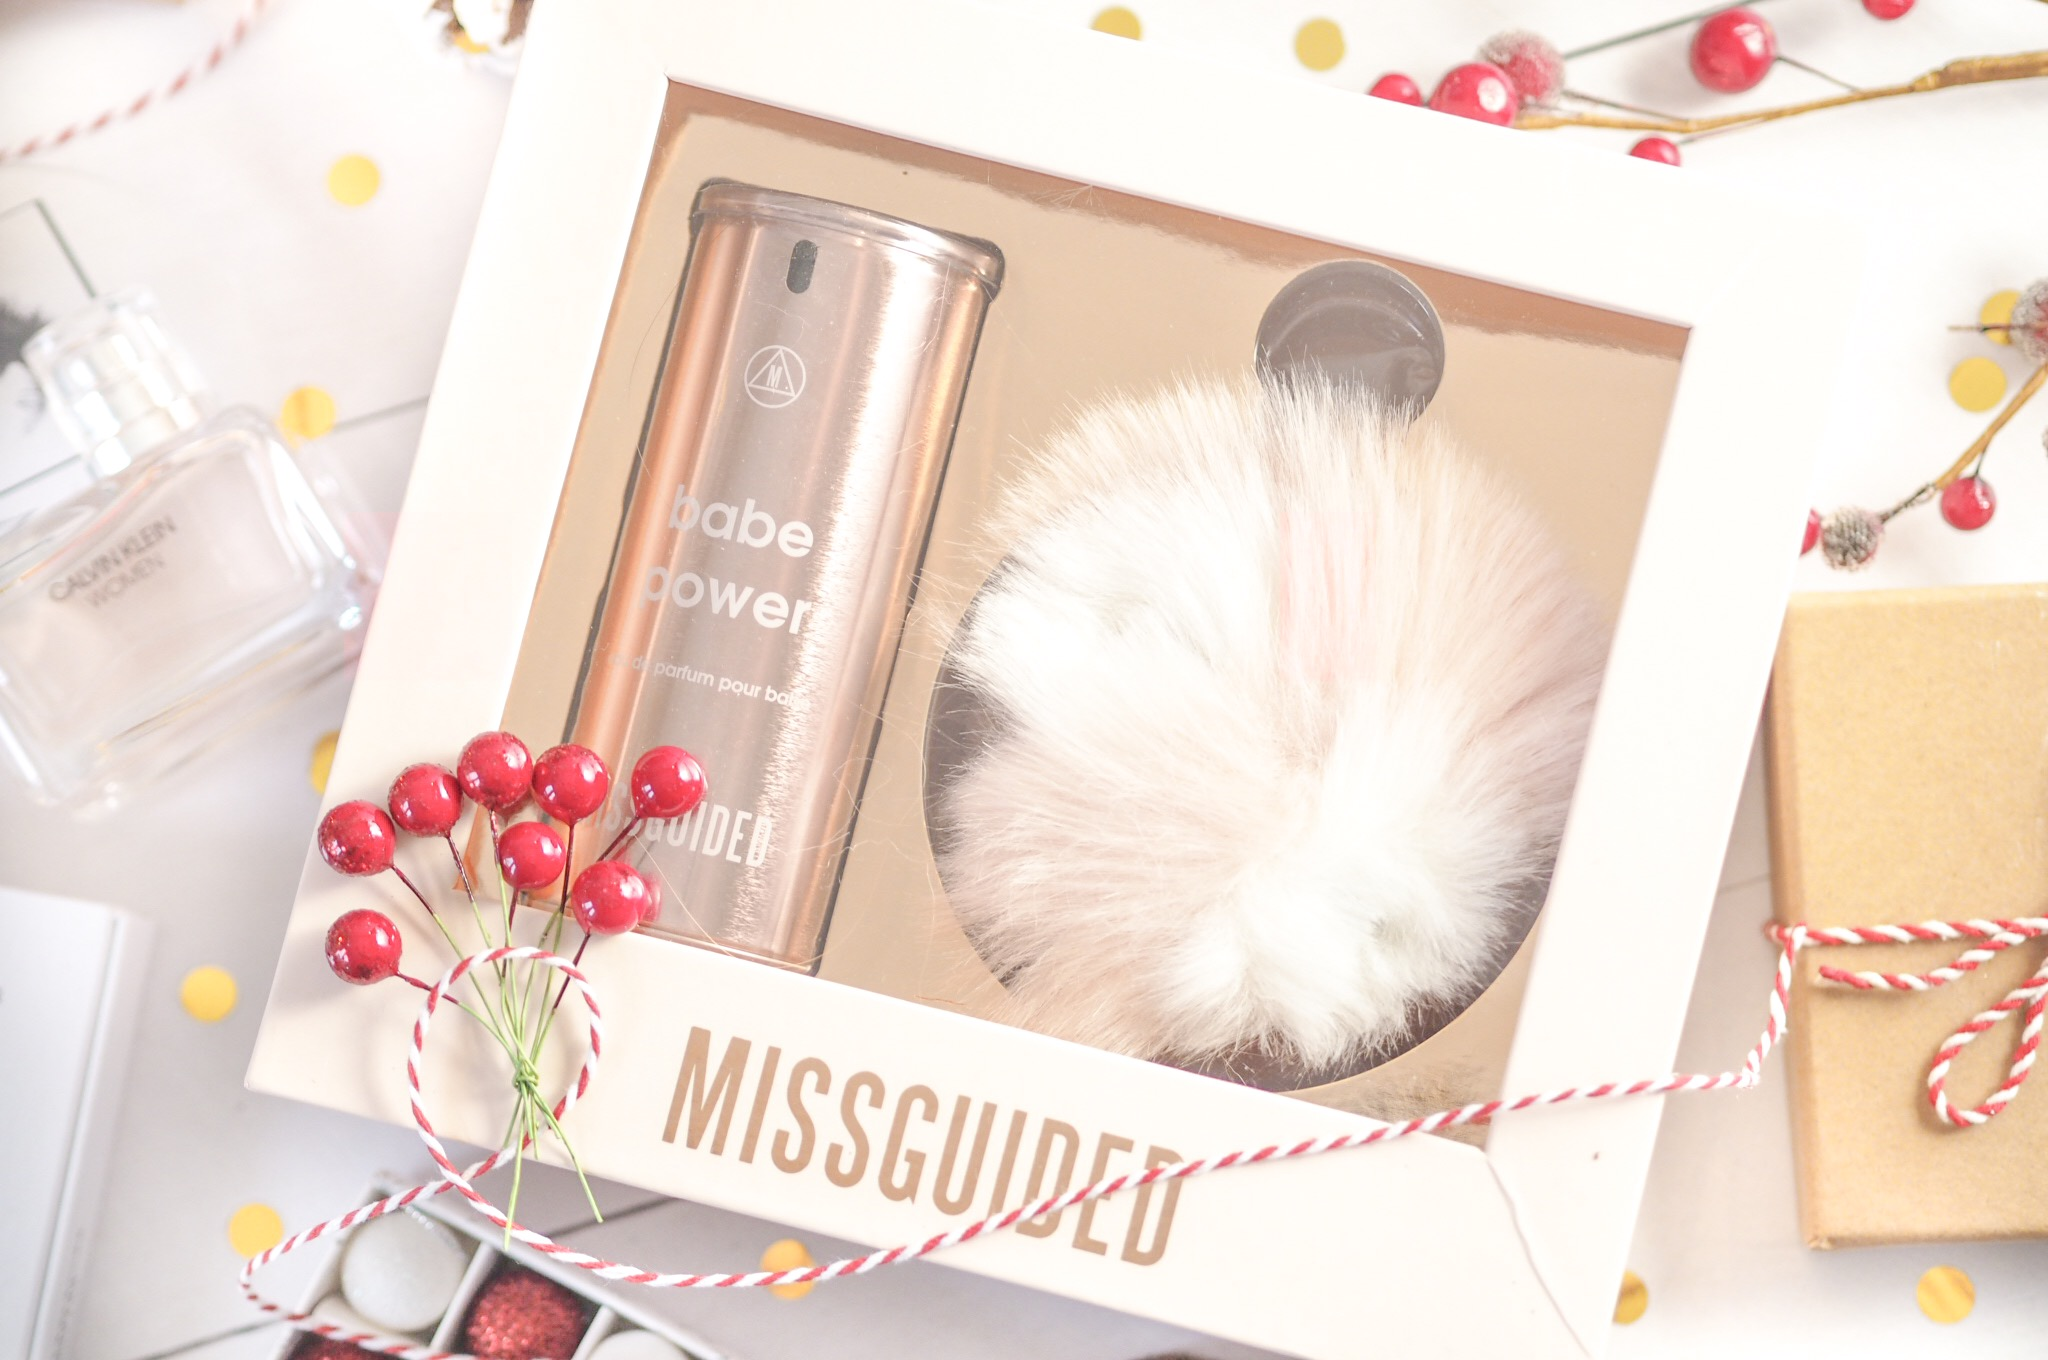 Missguided Babe Power Gift Set